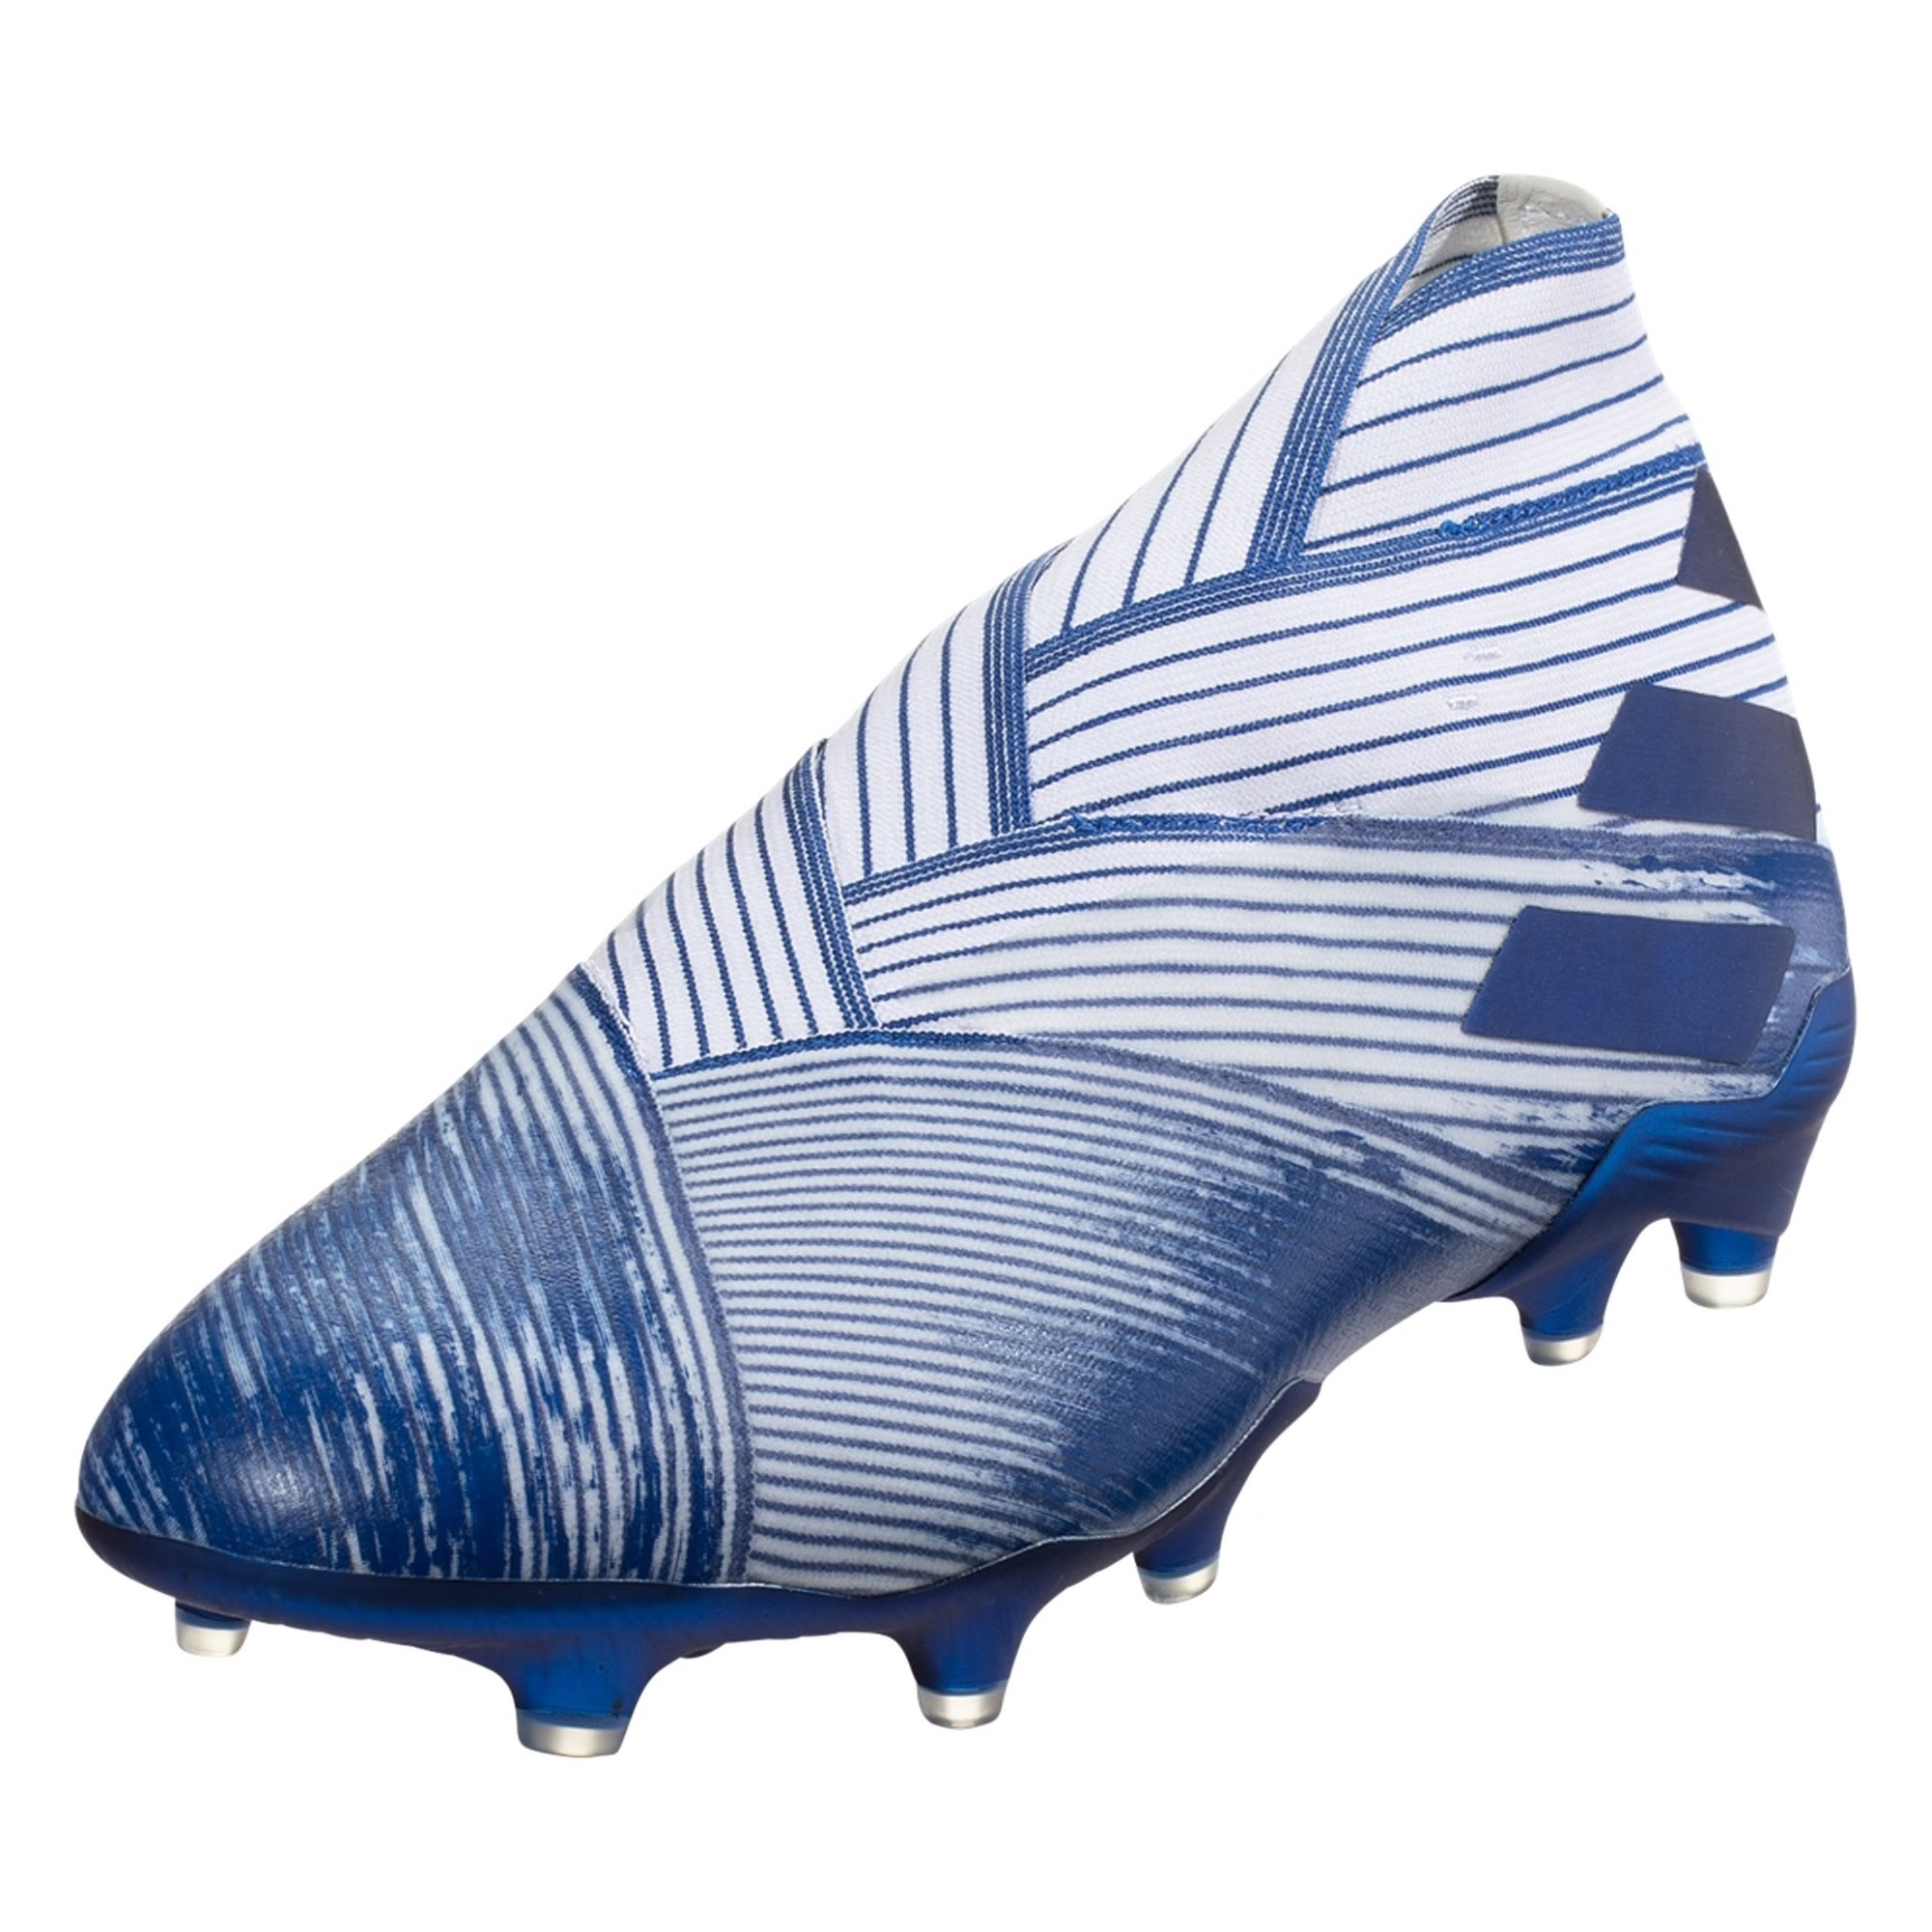 adidas Nemeziz 19+ FG Soccer Cleat - White / Royal Blue